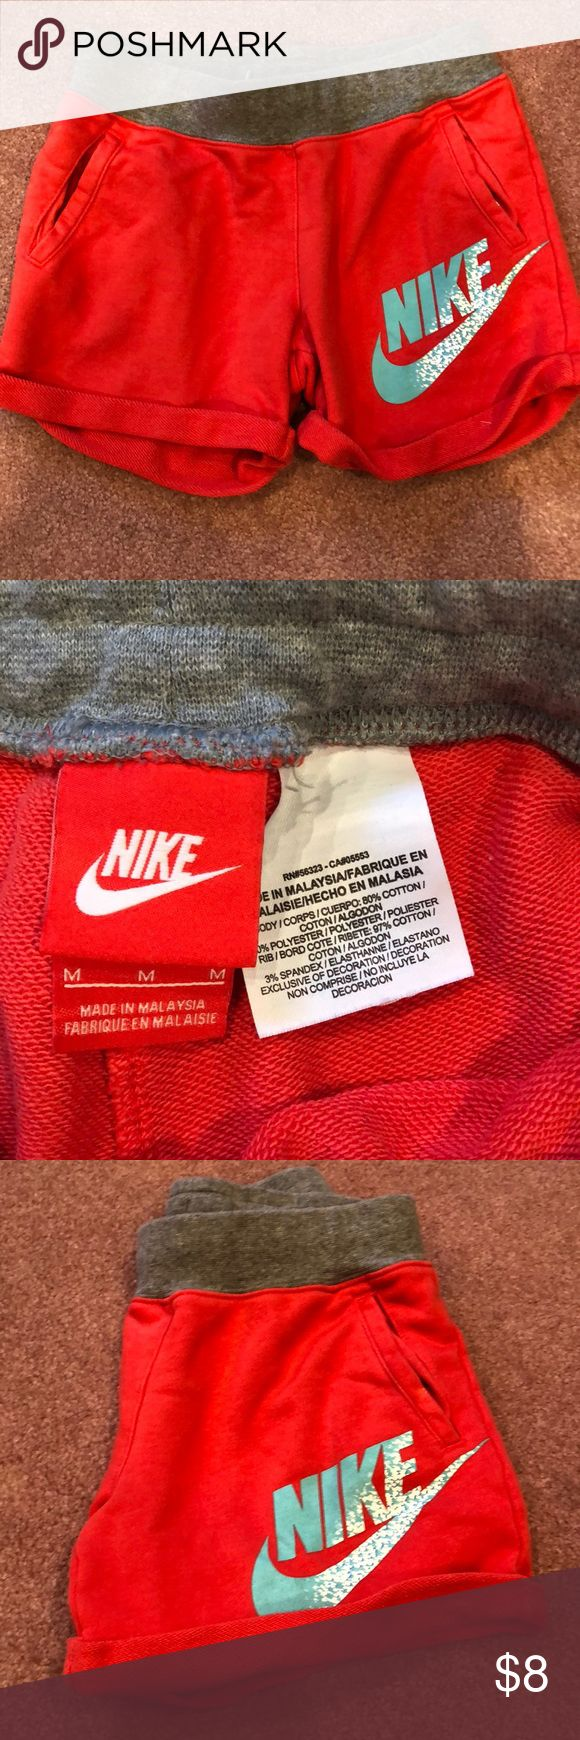 Girls M Nike cotton shorts Girls Medium size (not women's!) red cotton shorts with pockets. Gently worn, in good condition. Nike Shorts